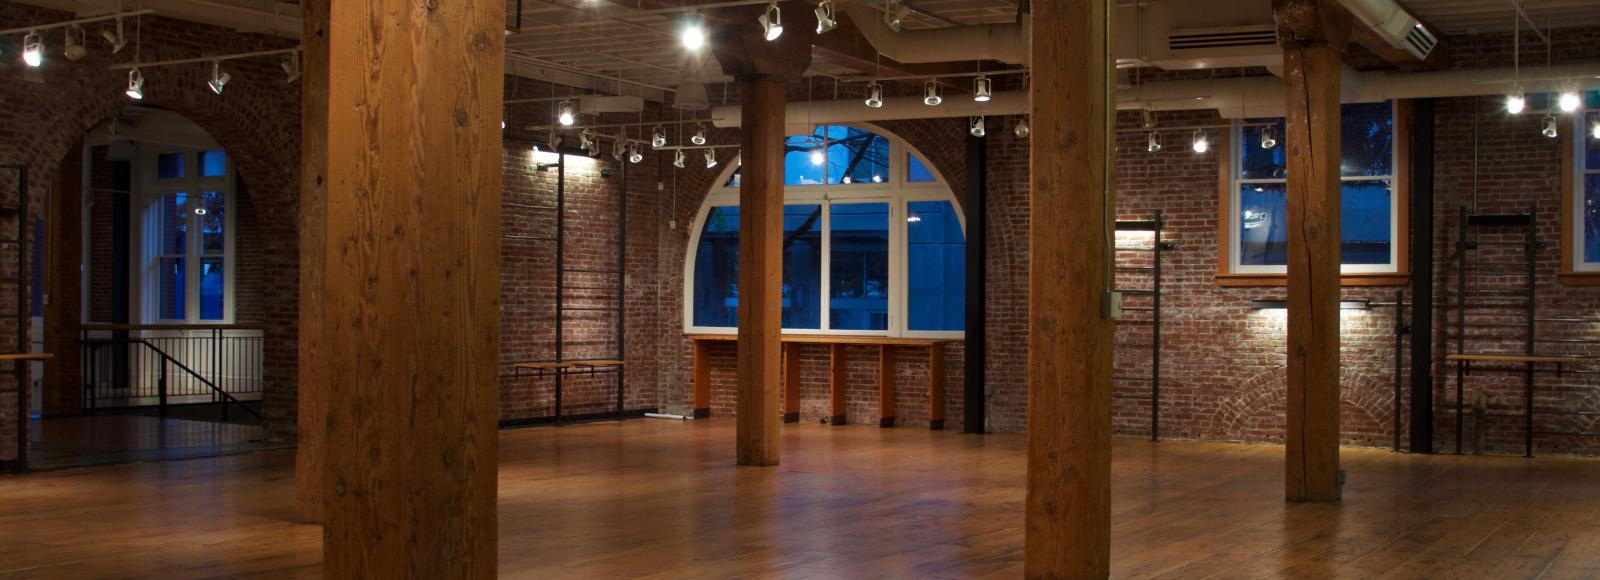 Empty event venue with wood beams and floors and brick walls